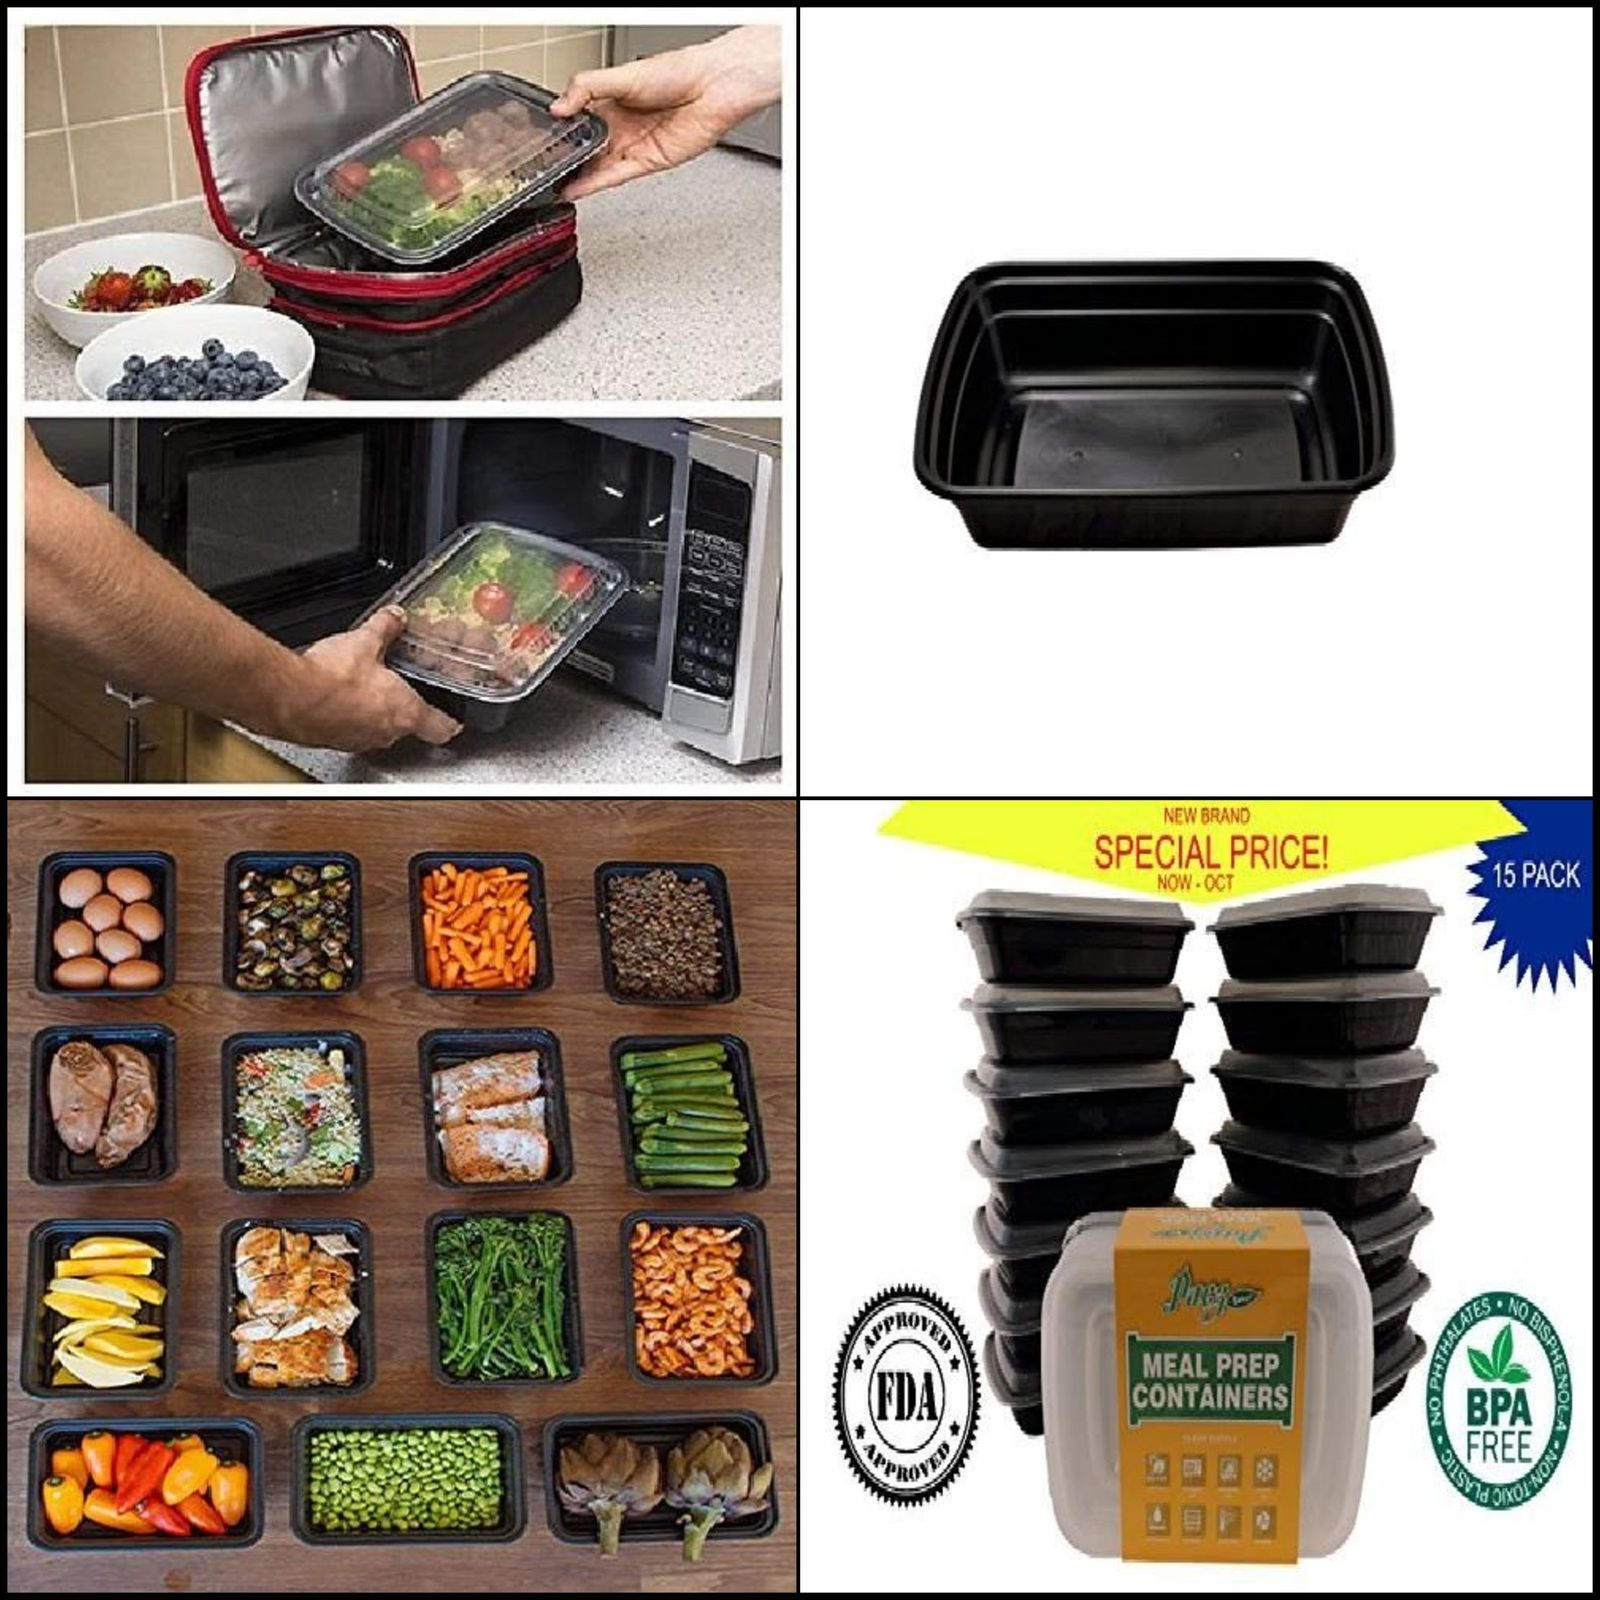 15 Meal Prep Containers Food Storage Reusable Microwavable 1 Compartment 25 oz 1